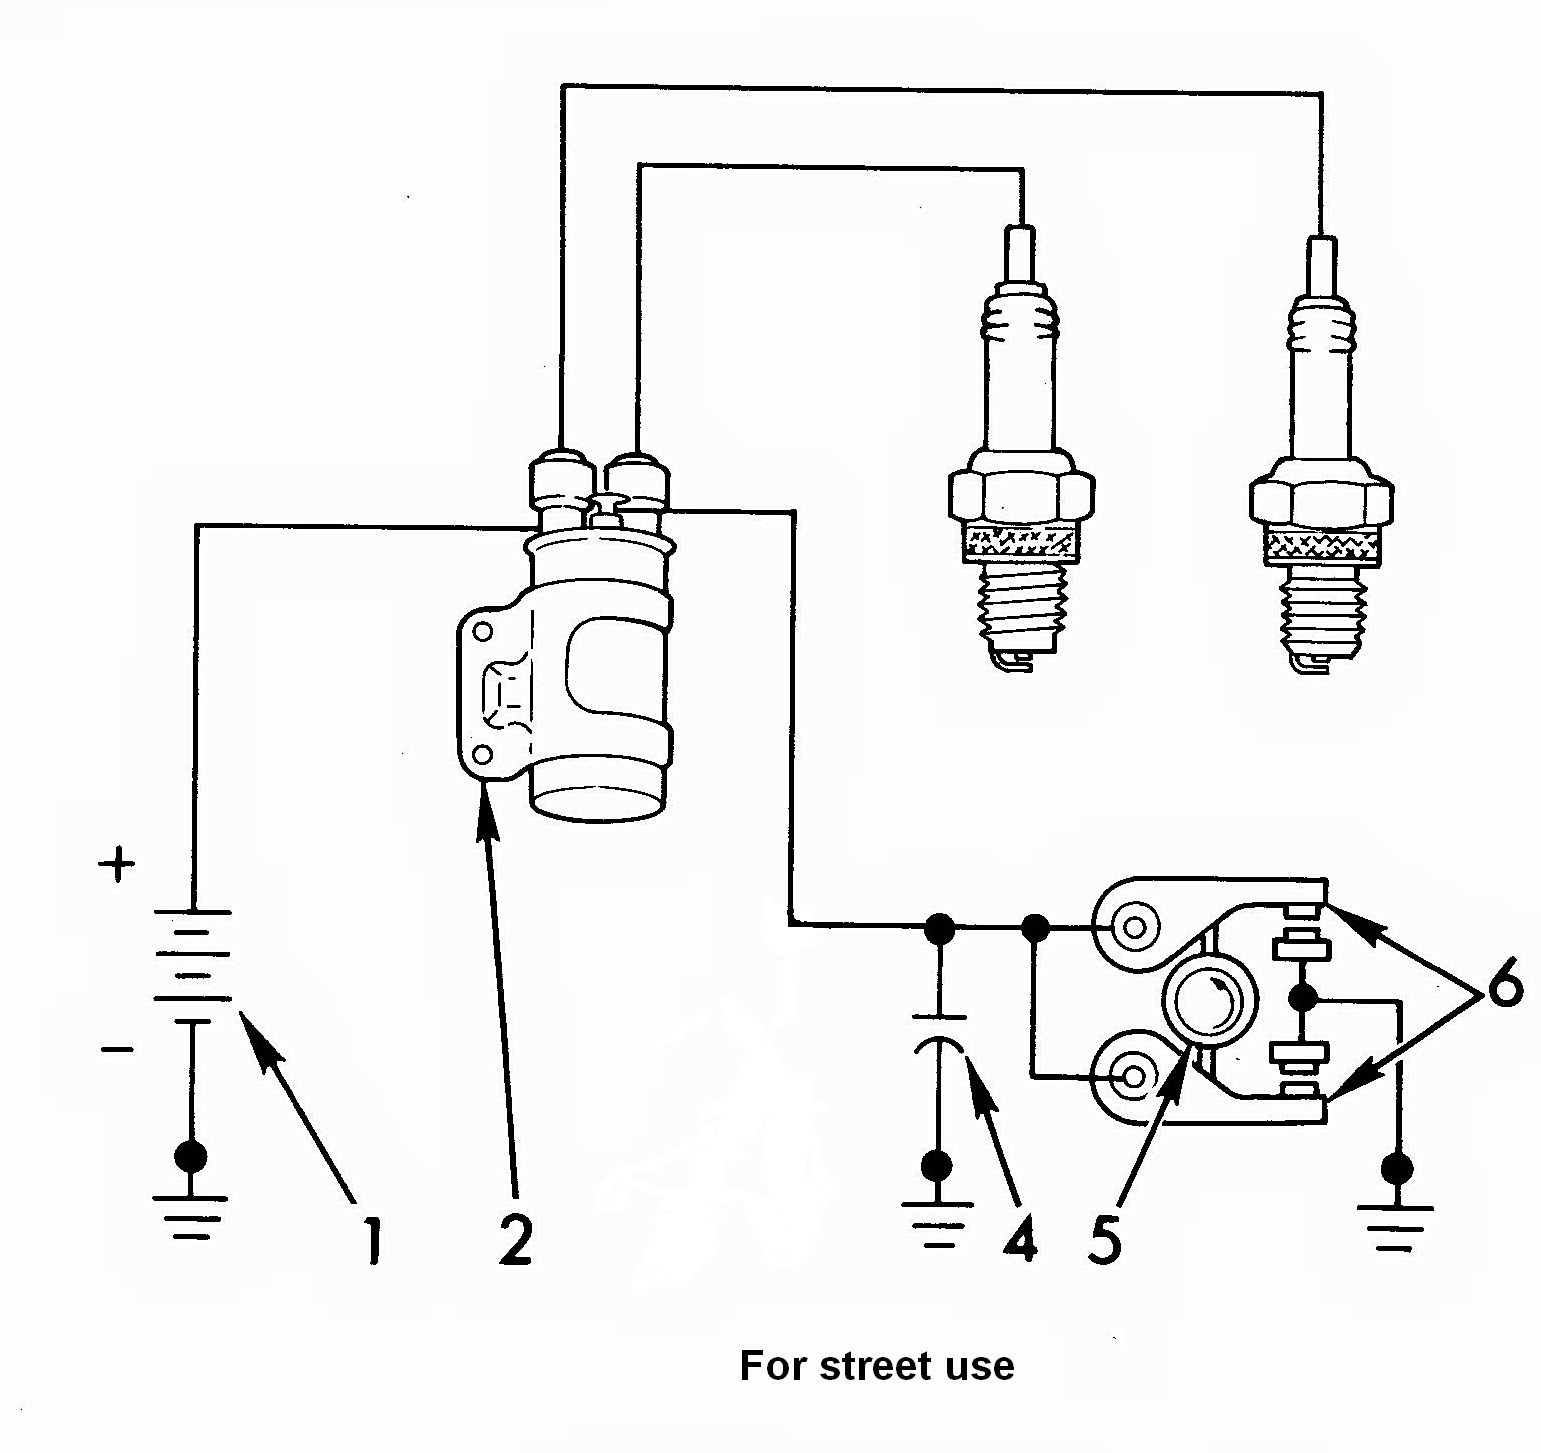 1980 Mgb Wiring Diagram. Wiring. Wiring Diagram Images